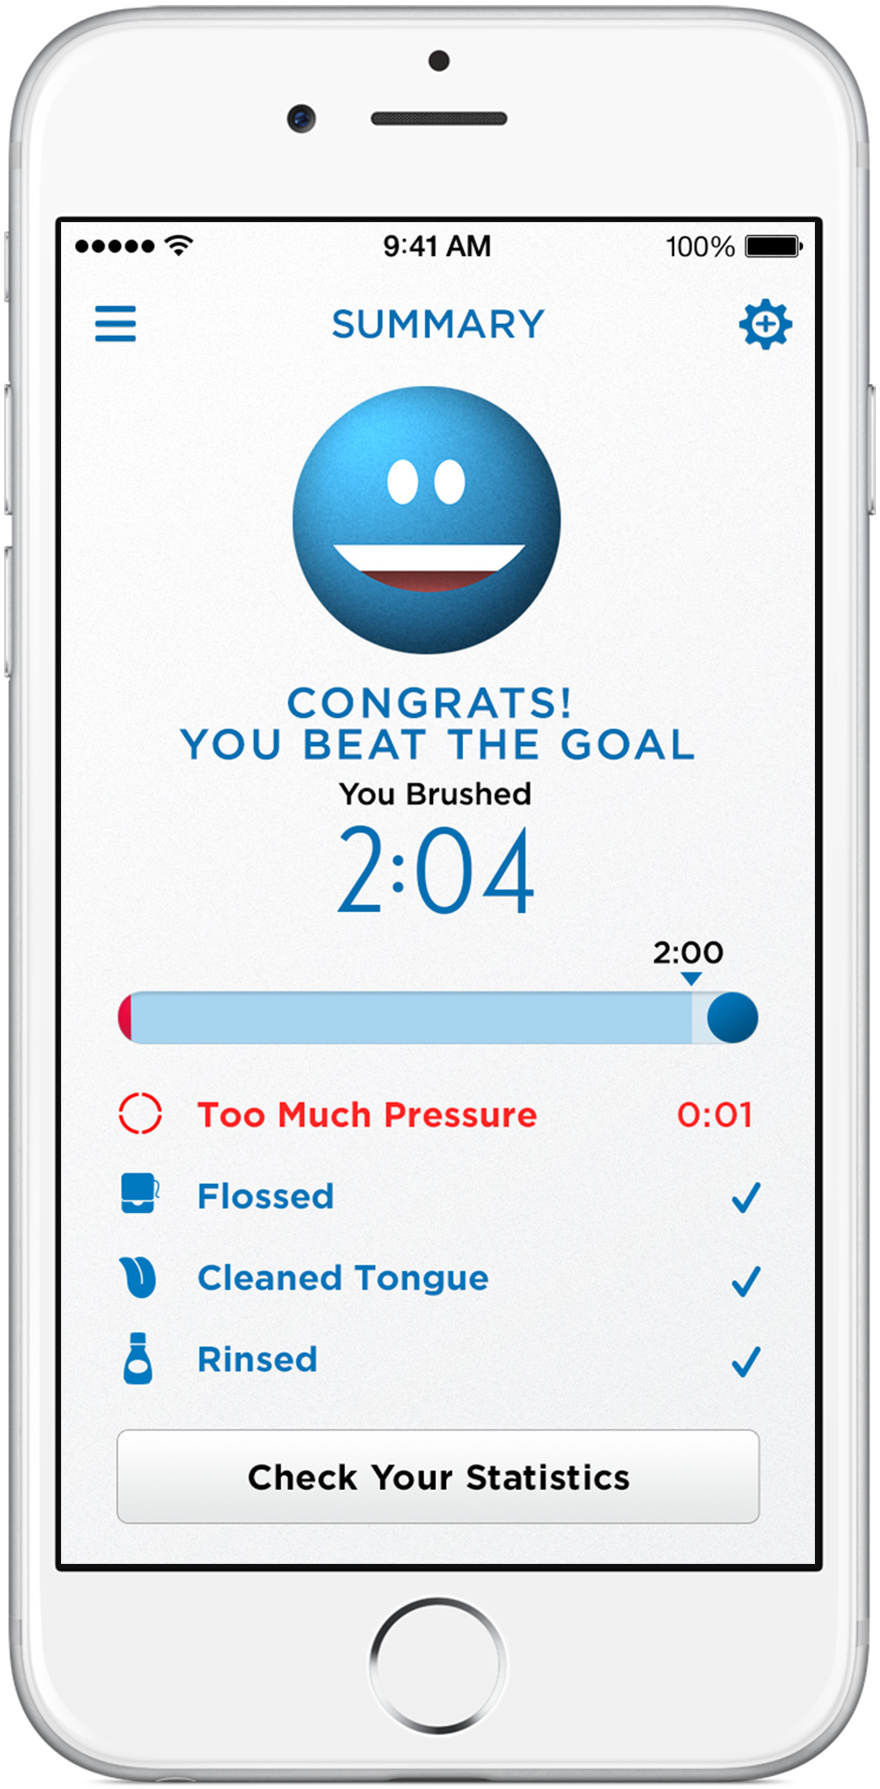 Oral-B app Summary